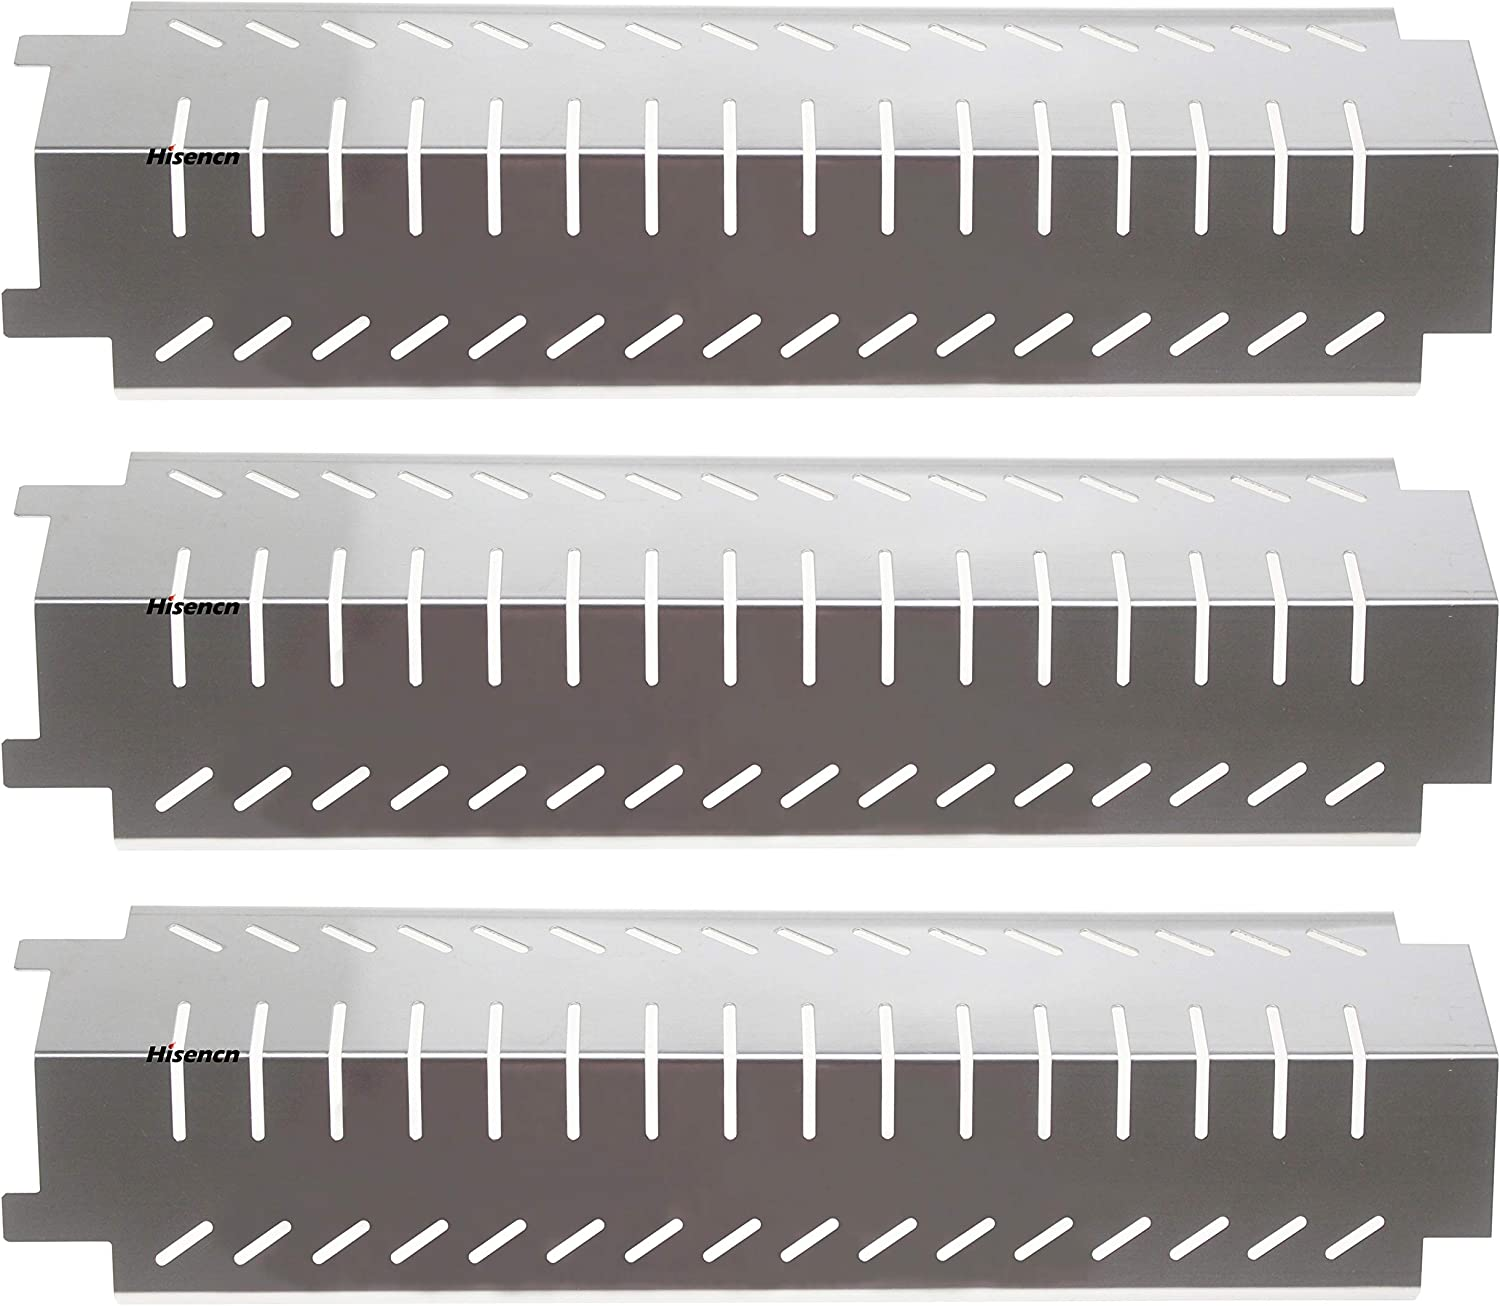 Fashion Hisencn 3-Pack Non-Magnetic Stainless Steel Plate Grill Heat Re Max 79% OFF